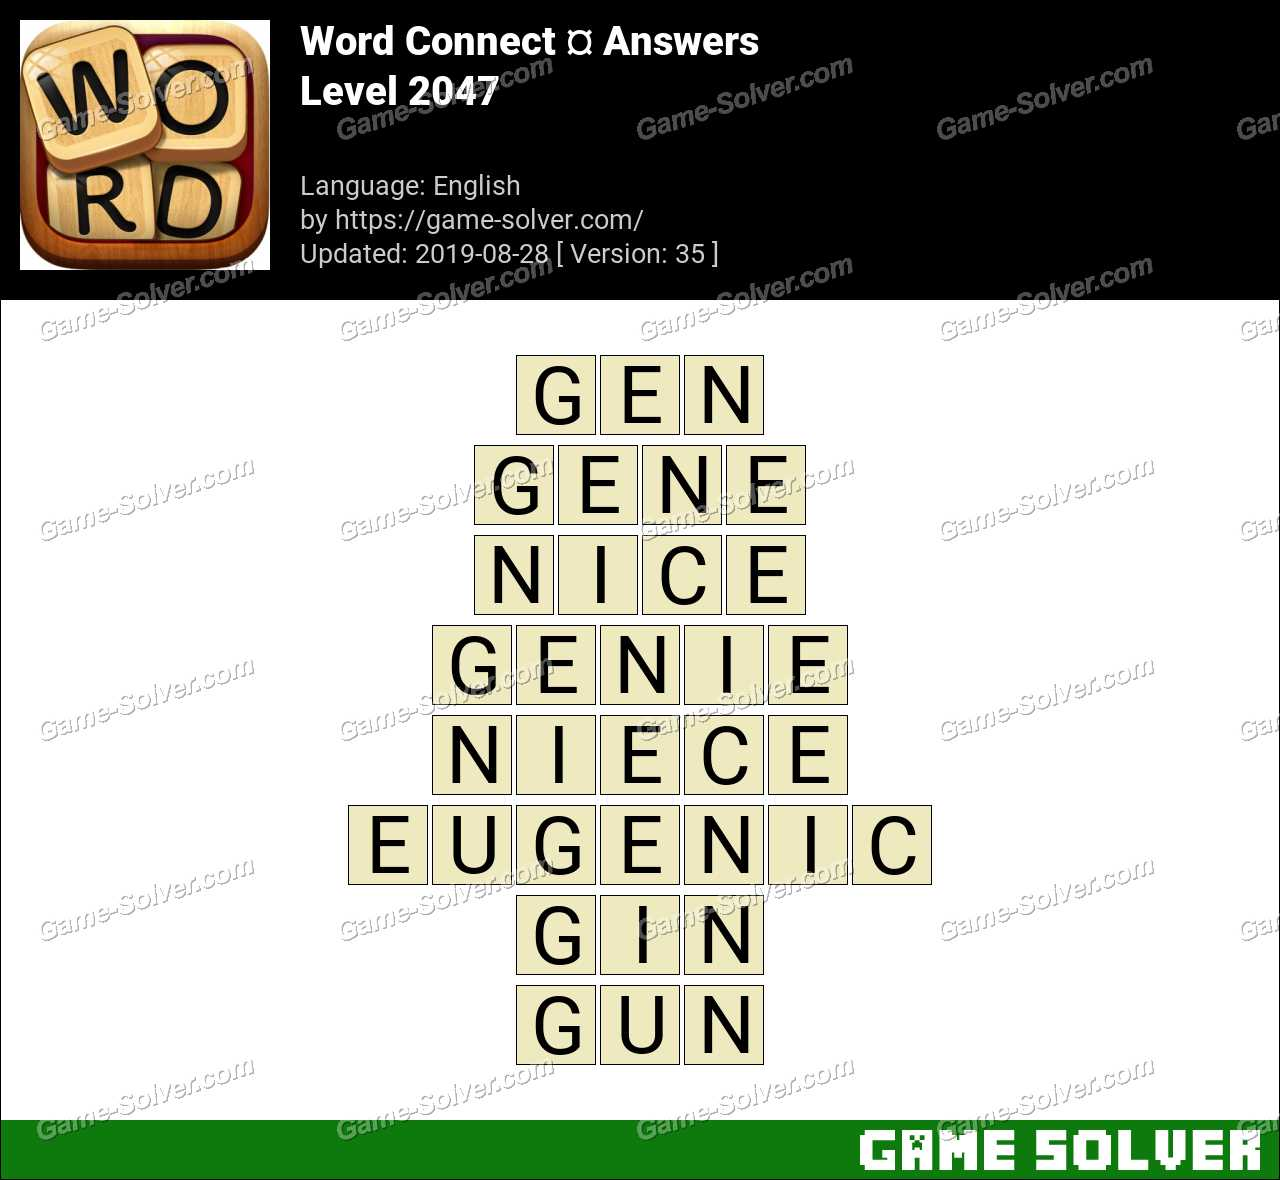 Word Connect Level 2047 Answers